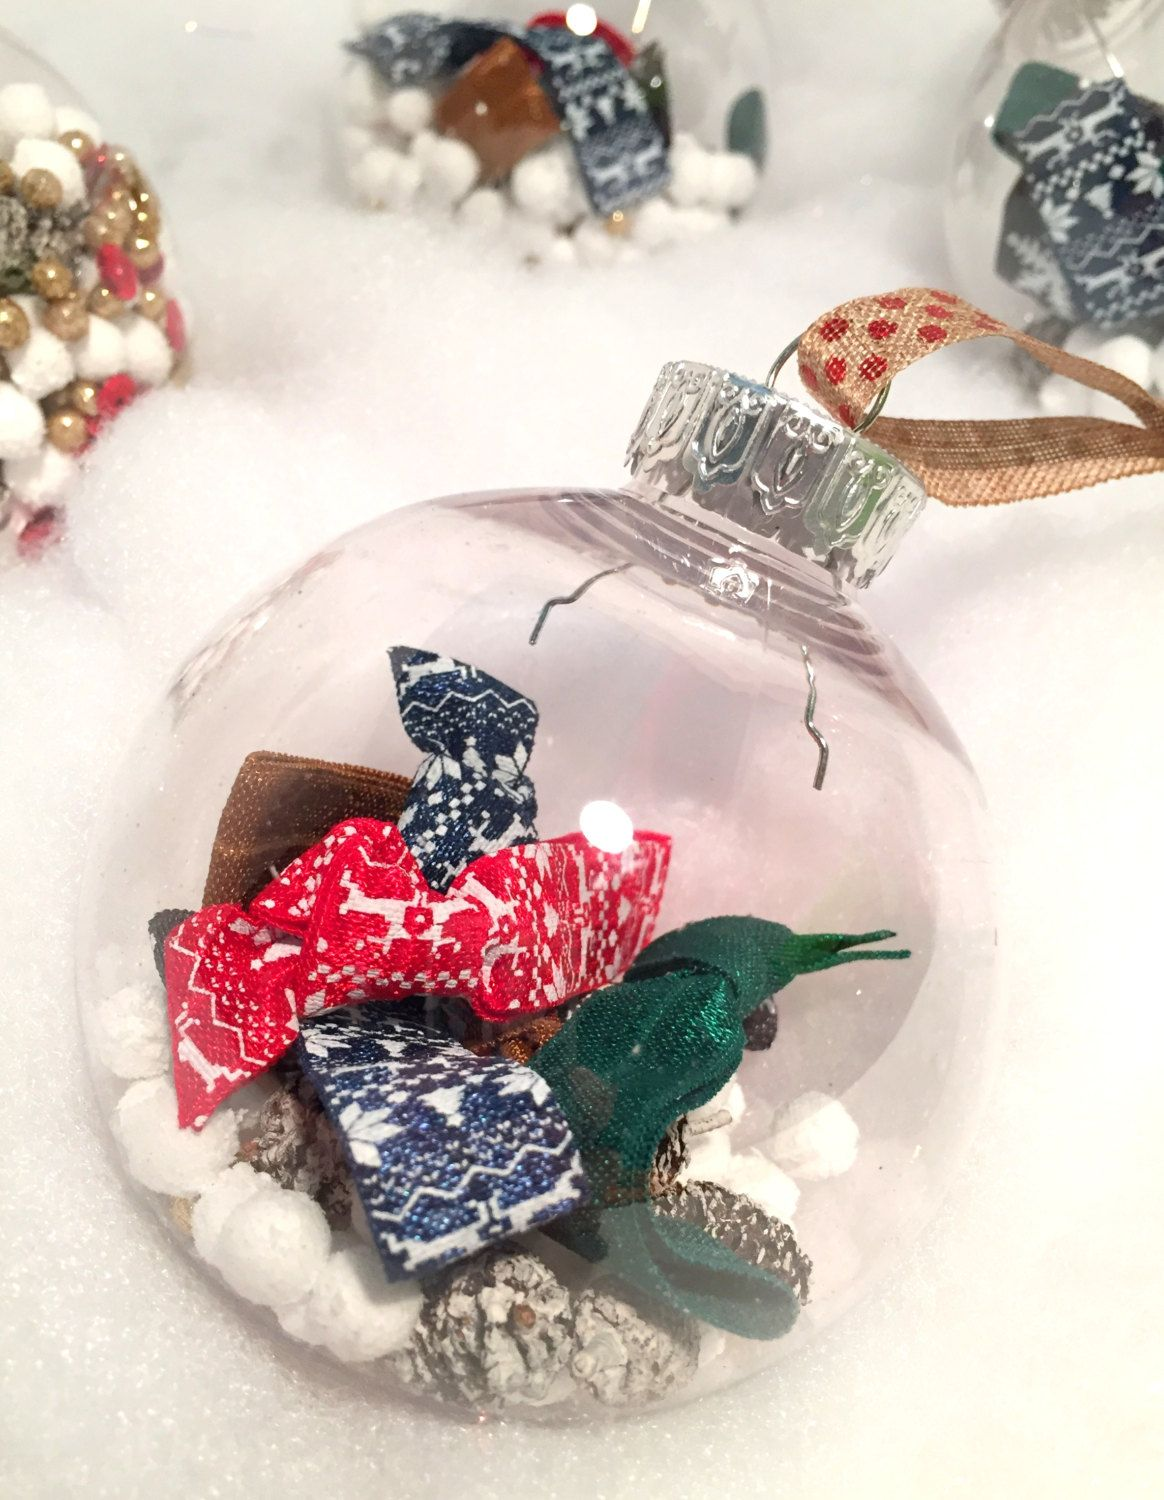 Gifts for Her, Secret Santa Gifts, Gifts Under 15 dollars - Ornament ...